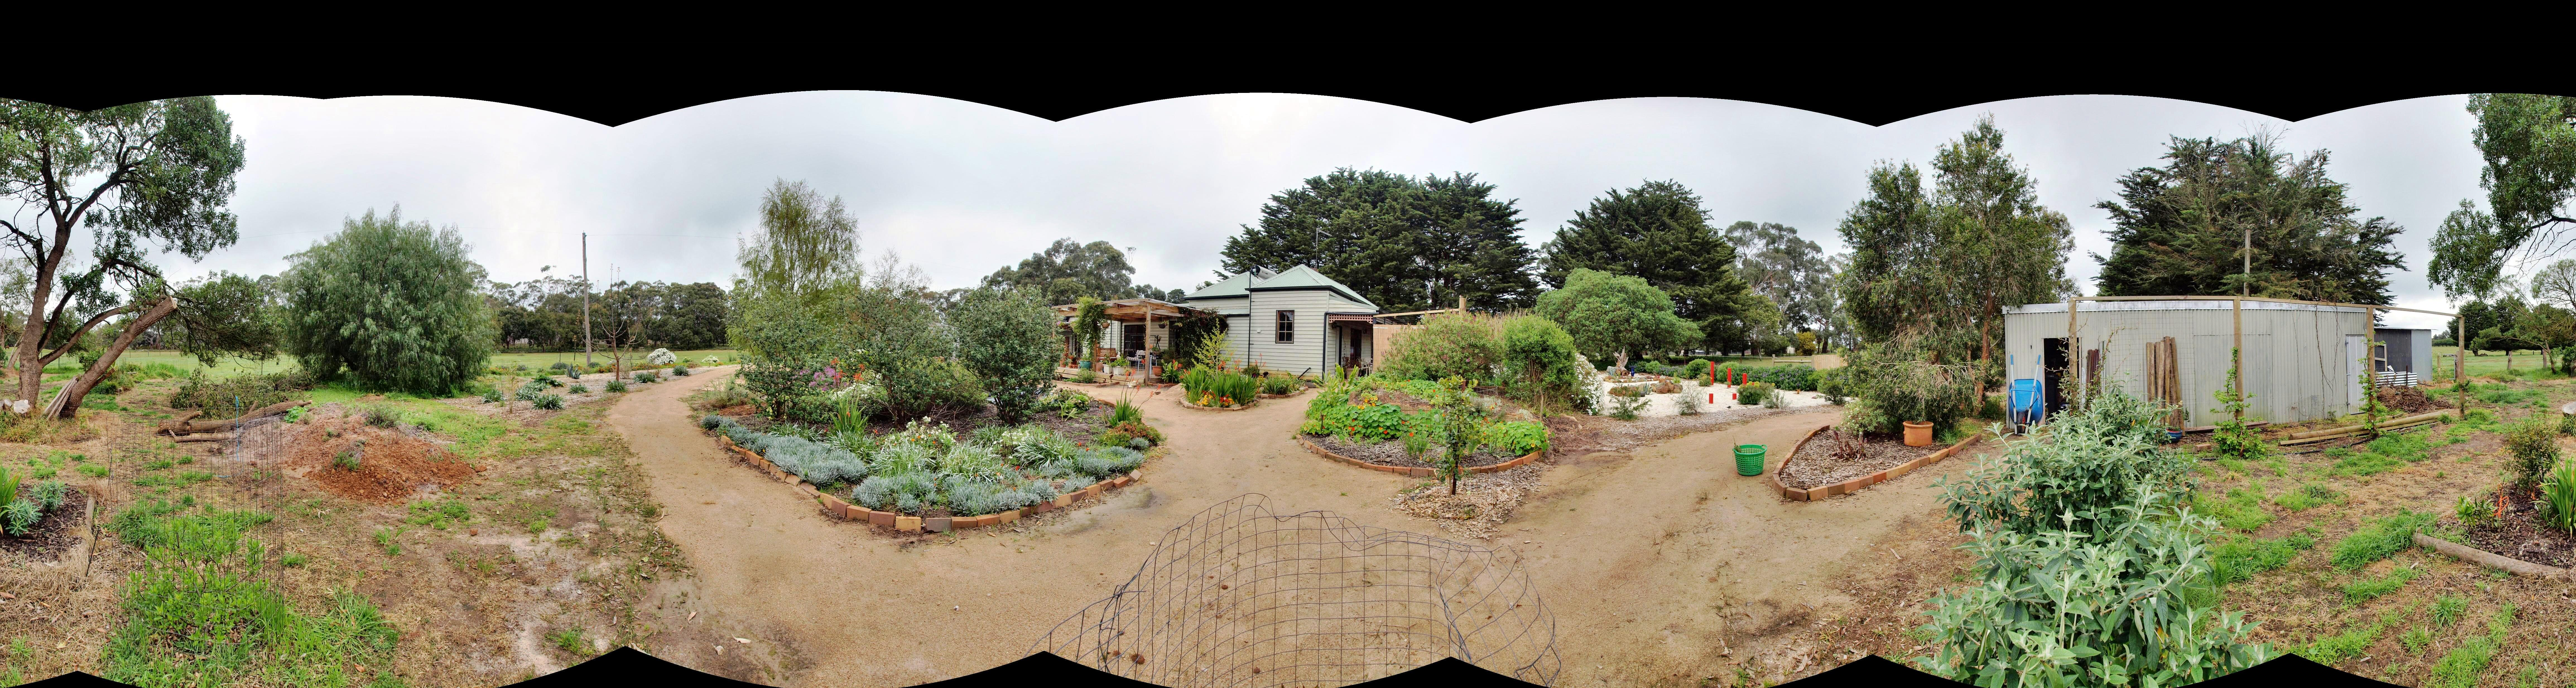 garden-ne-panorama-dup-raw.jpeg